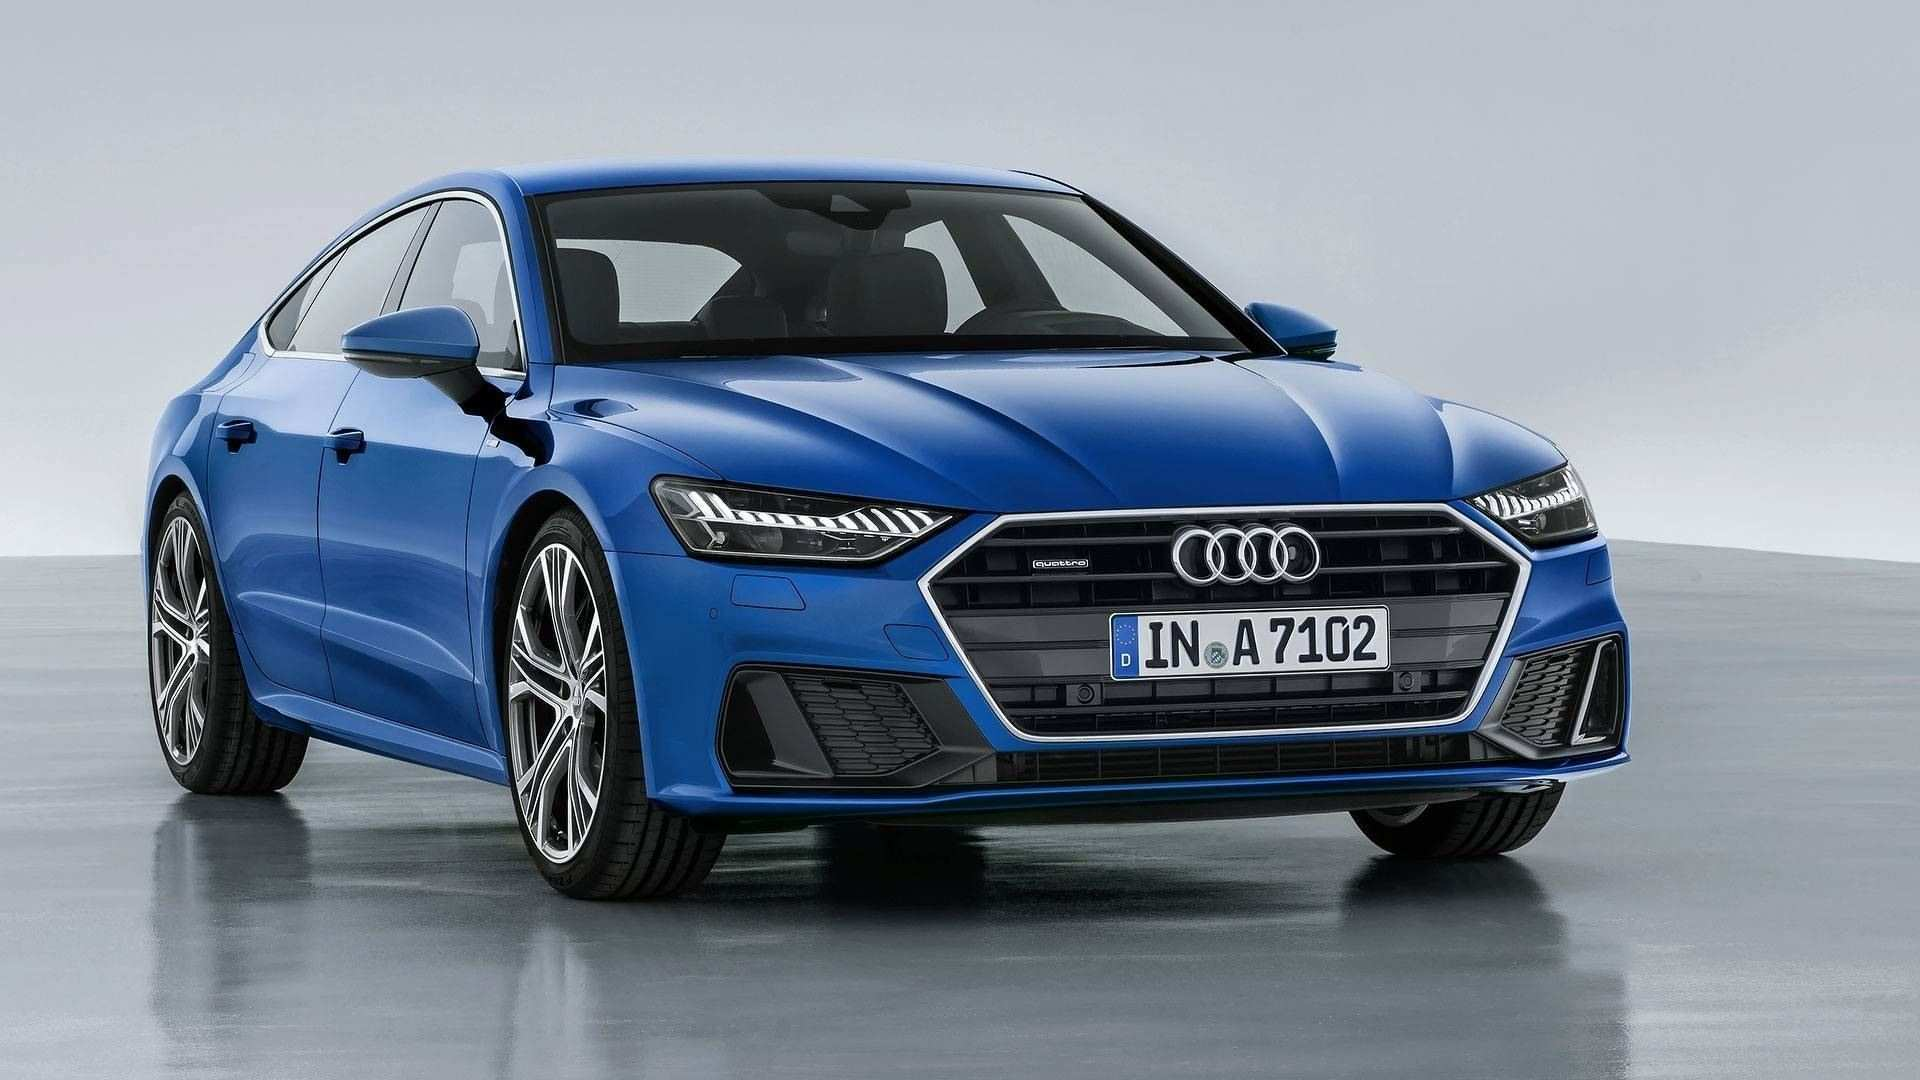 99 New 2020 Audi A7 Colors Picture